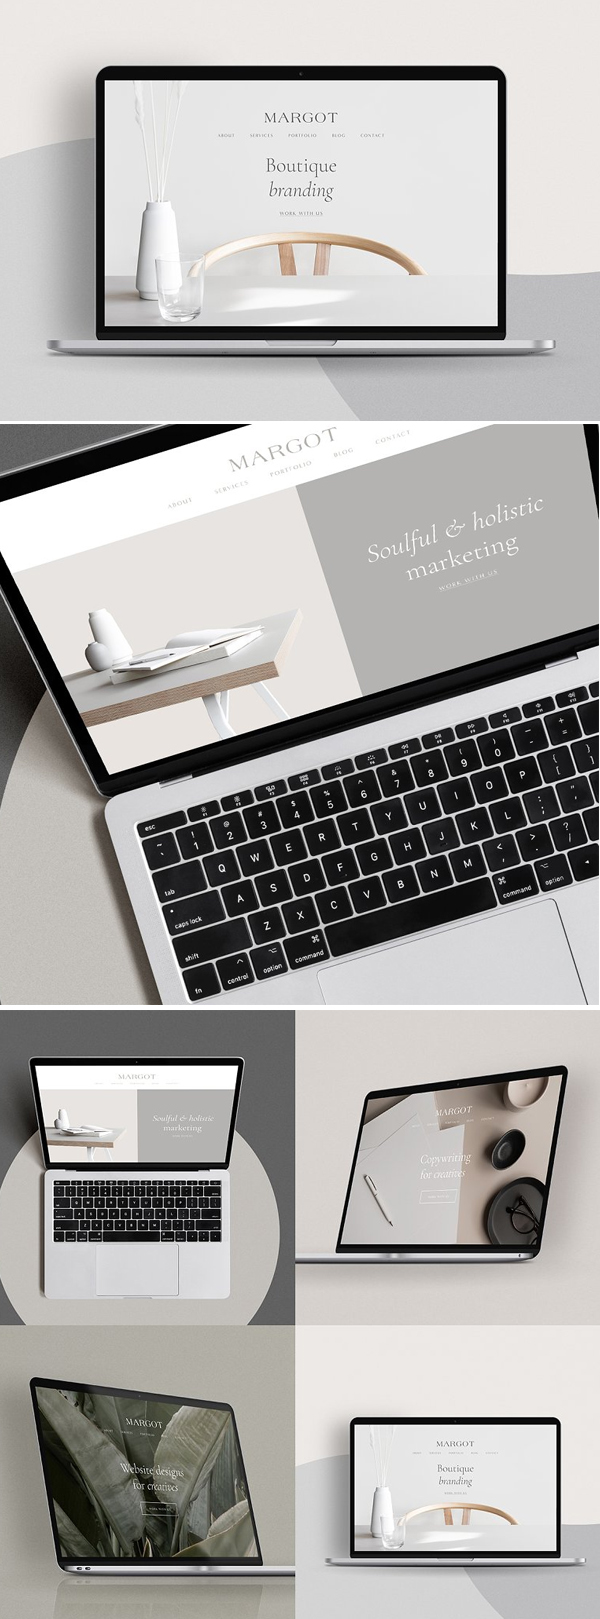 Simple MacBook Mockup Scene Creator